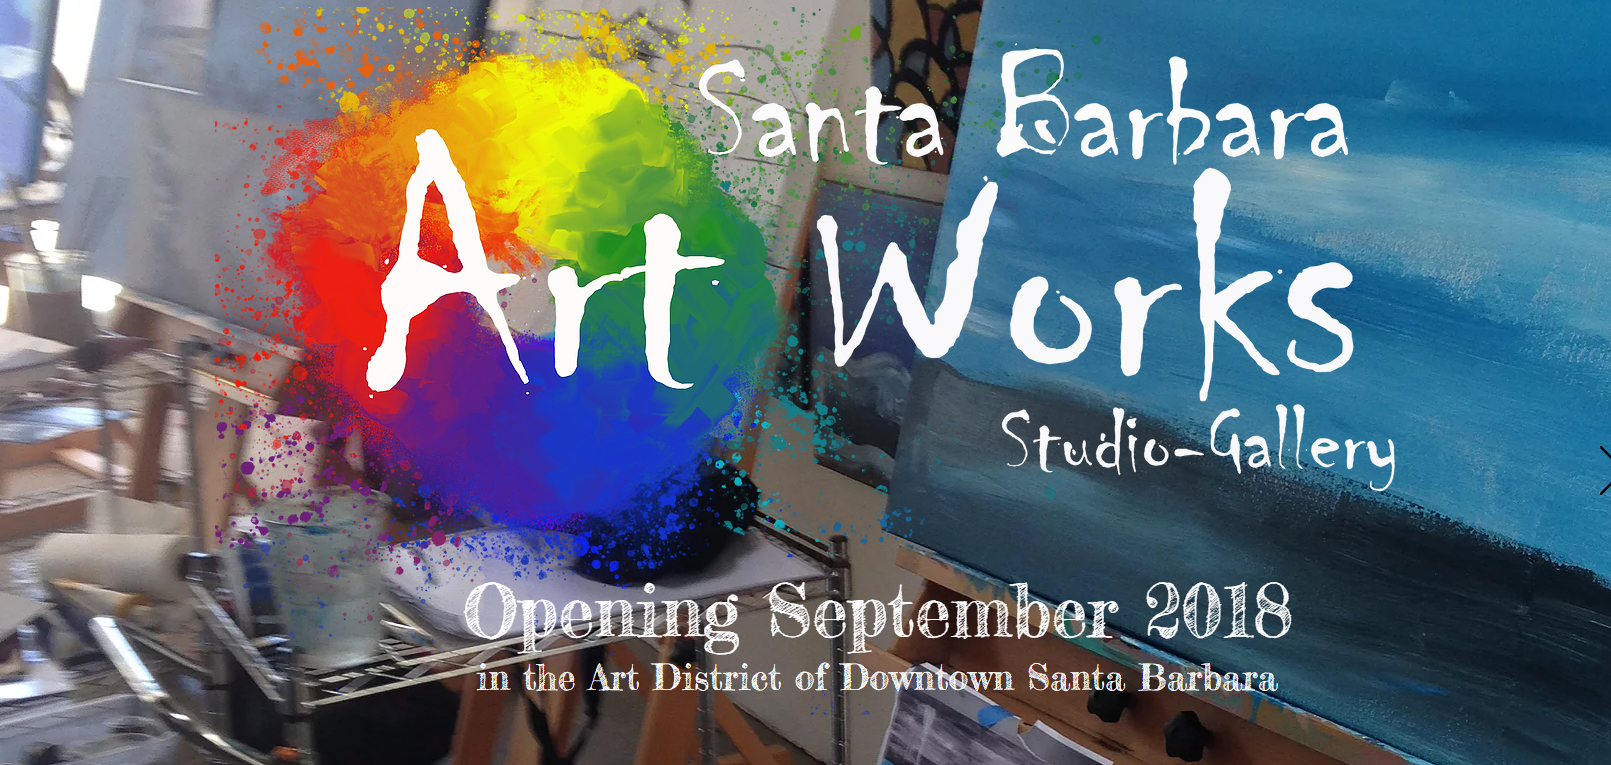 New Art Studio Opens in Santa Barbara